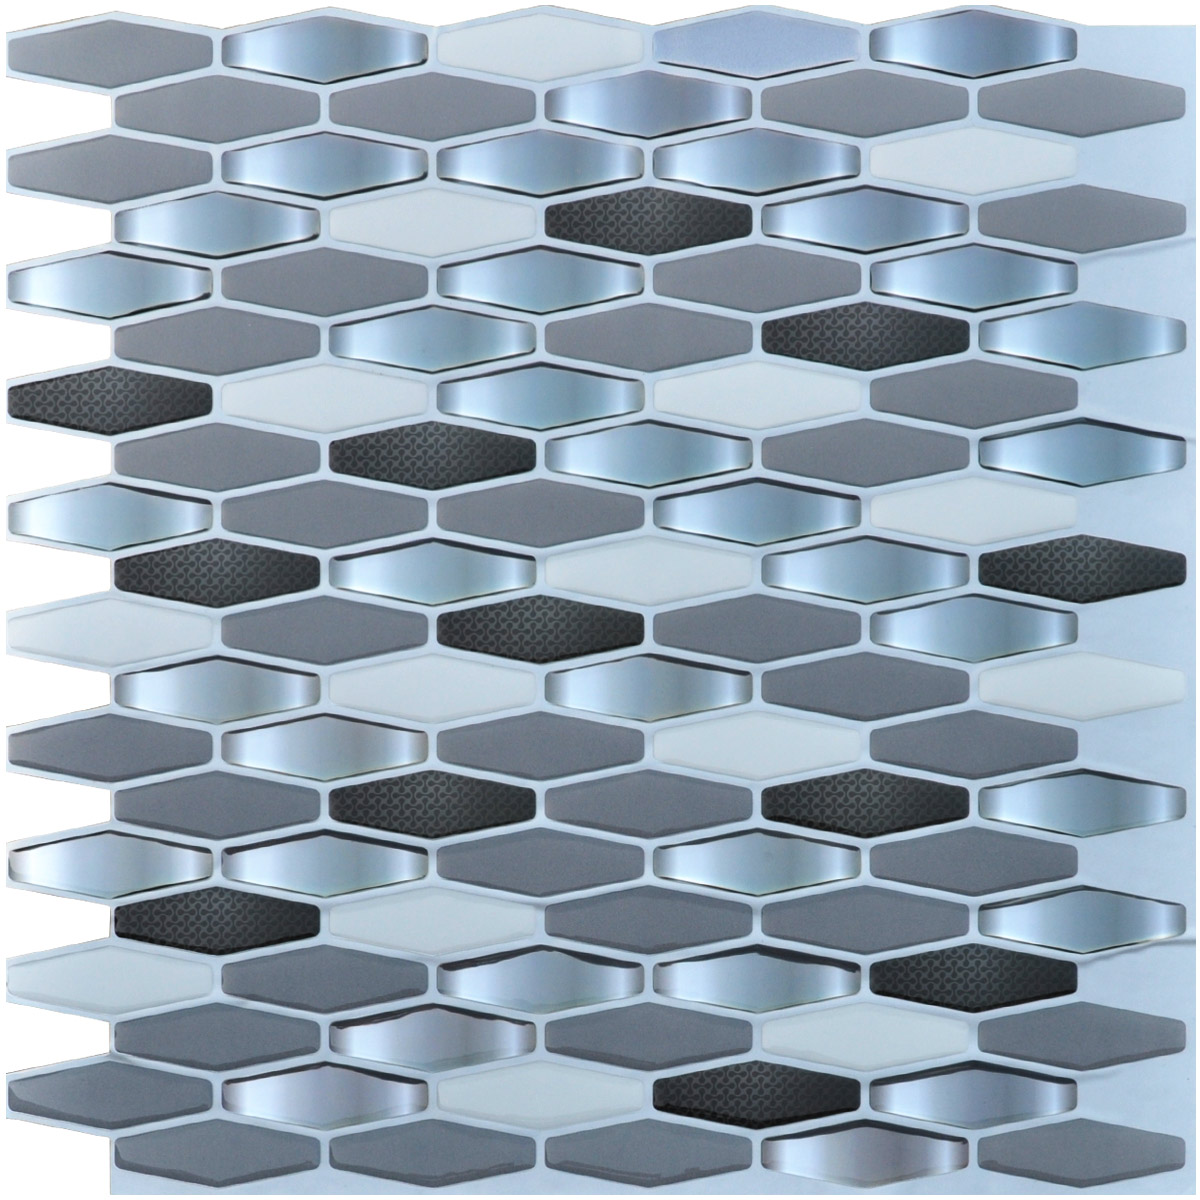 Up To 45 Off Peel Stick Kitchen Backsplash Tile At Walmart: Art3d Self Adhesive Backsplash Tiles, Diamond Pack Of 6